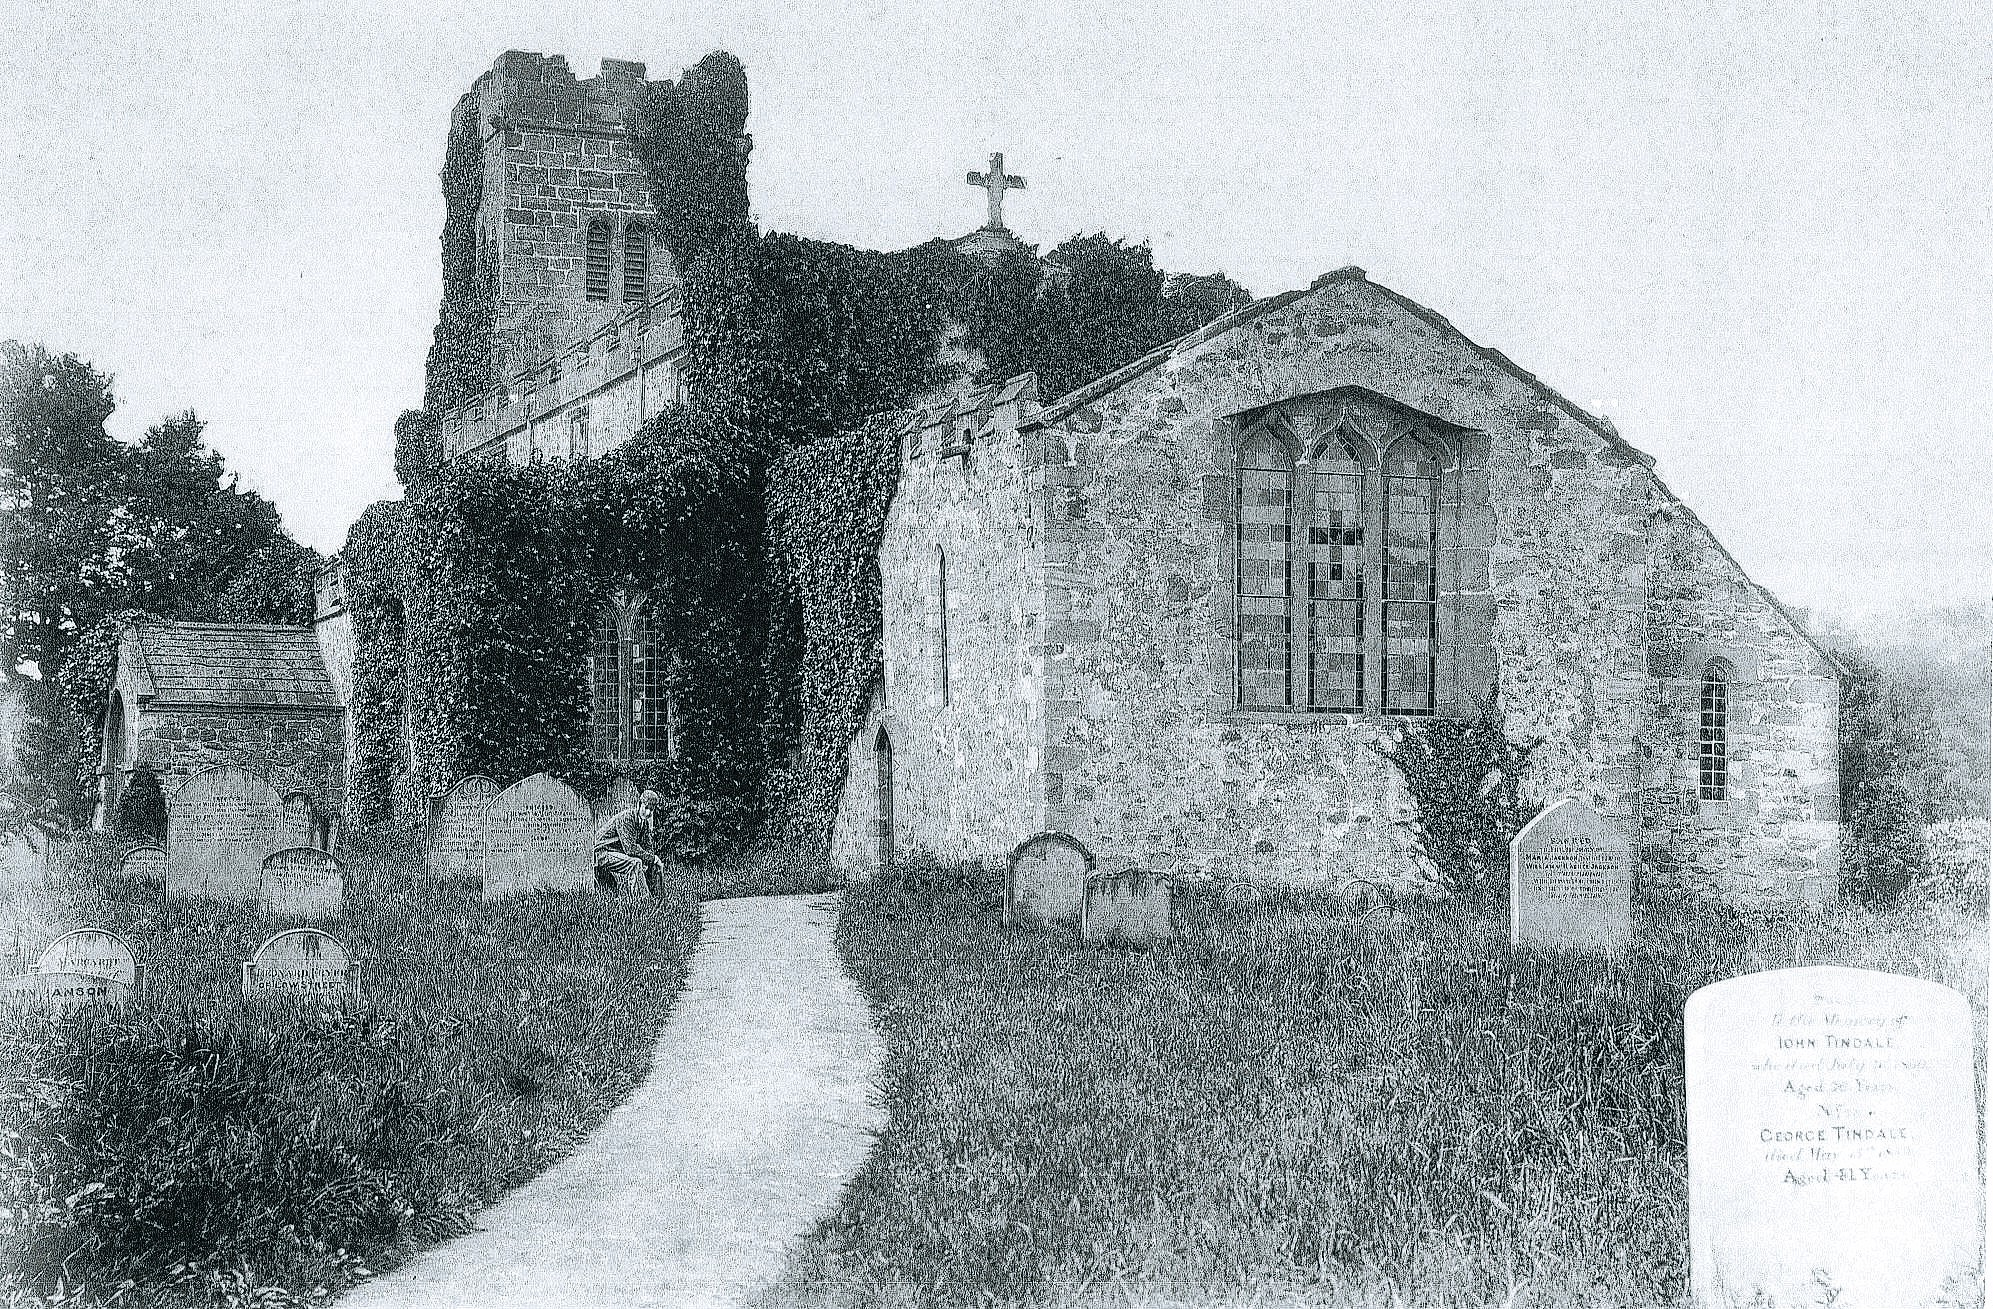 A very early photo of St Radegun's Church, Scruton, before it was rebuilt in 1864. Can you see the chap sitting by the porch?